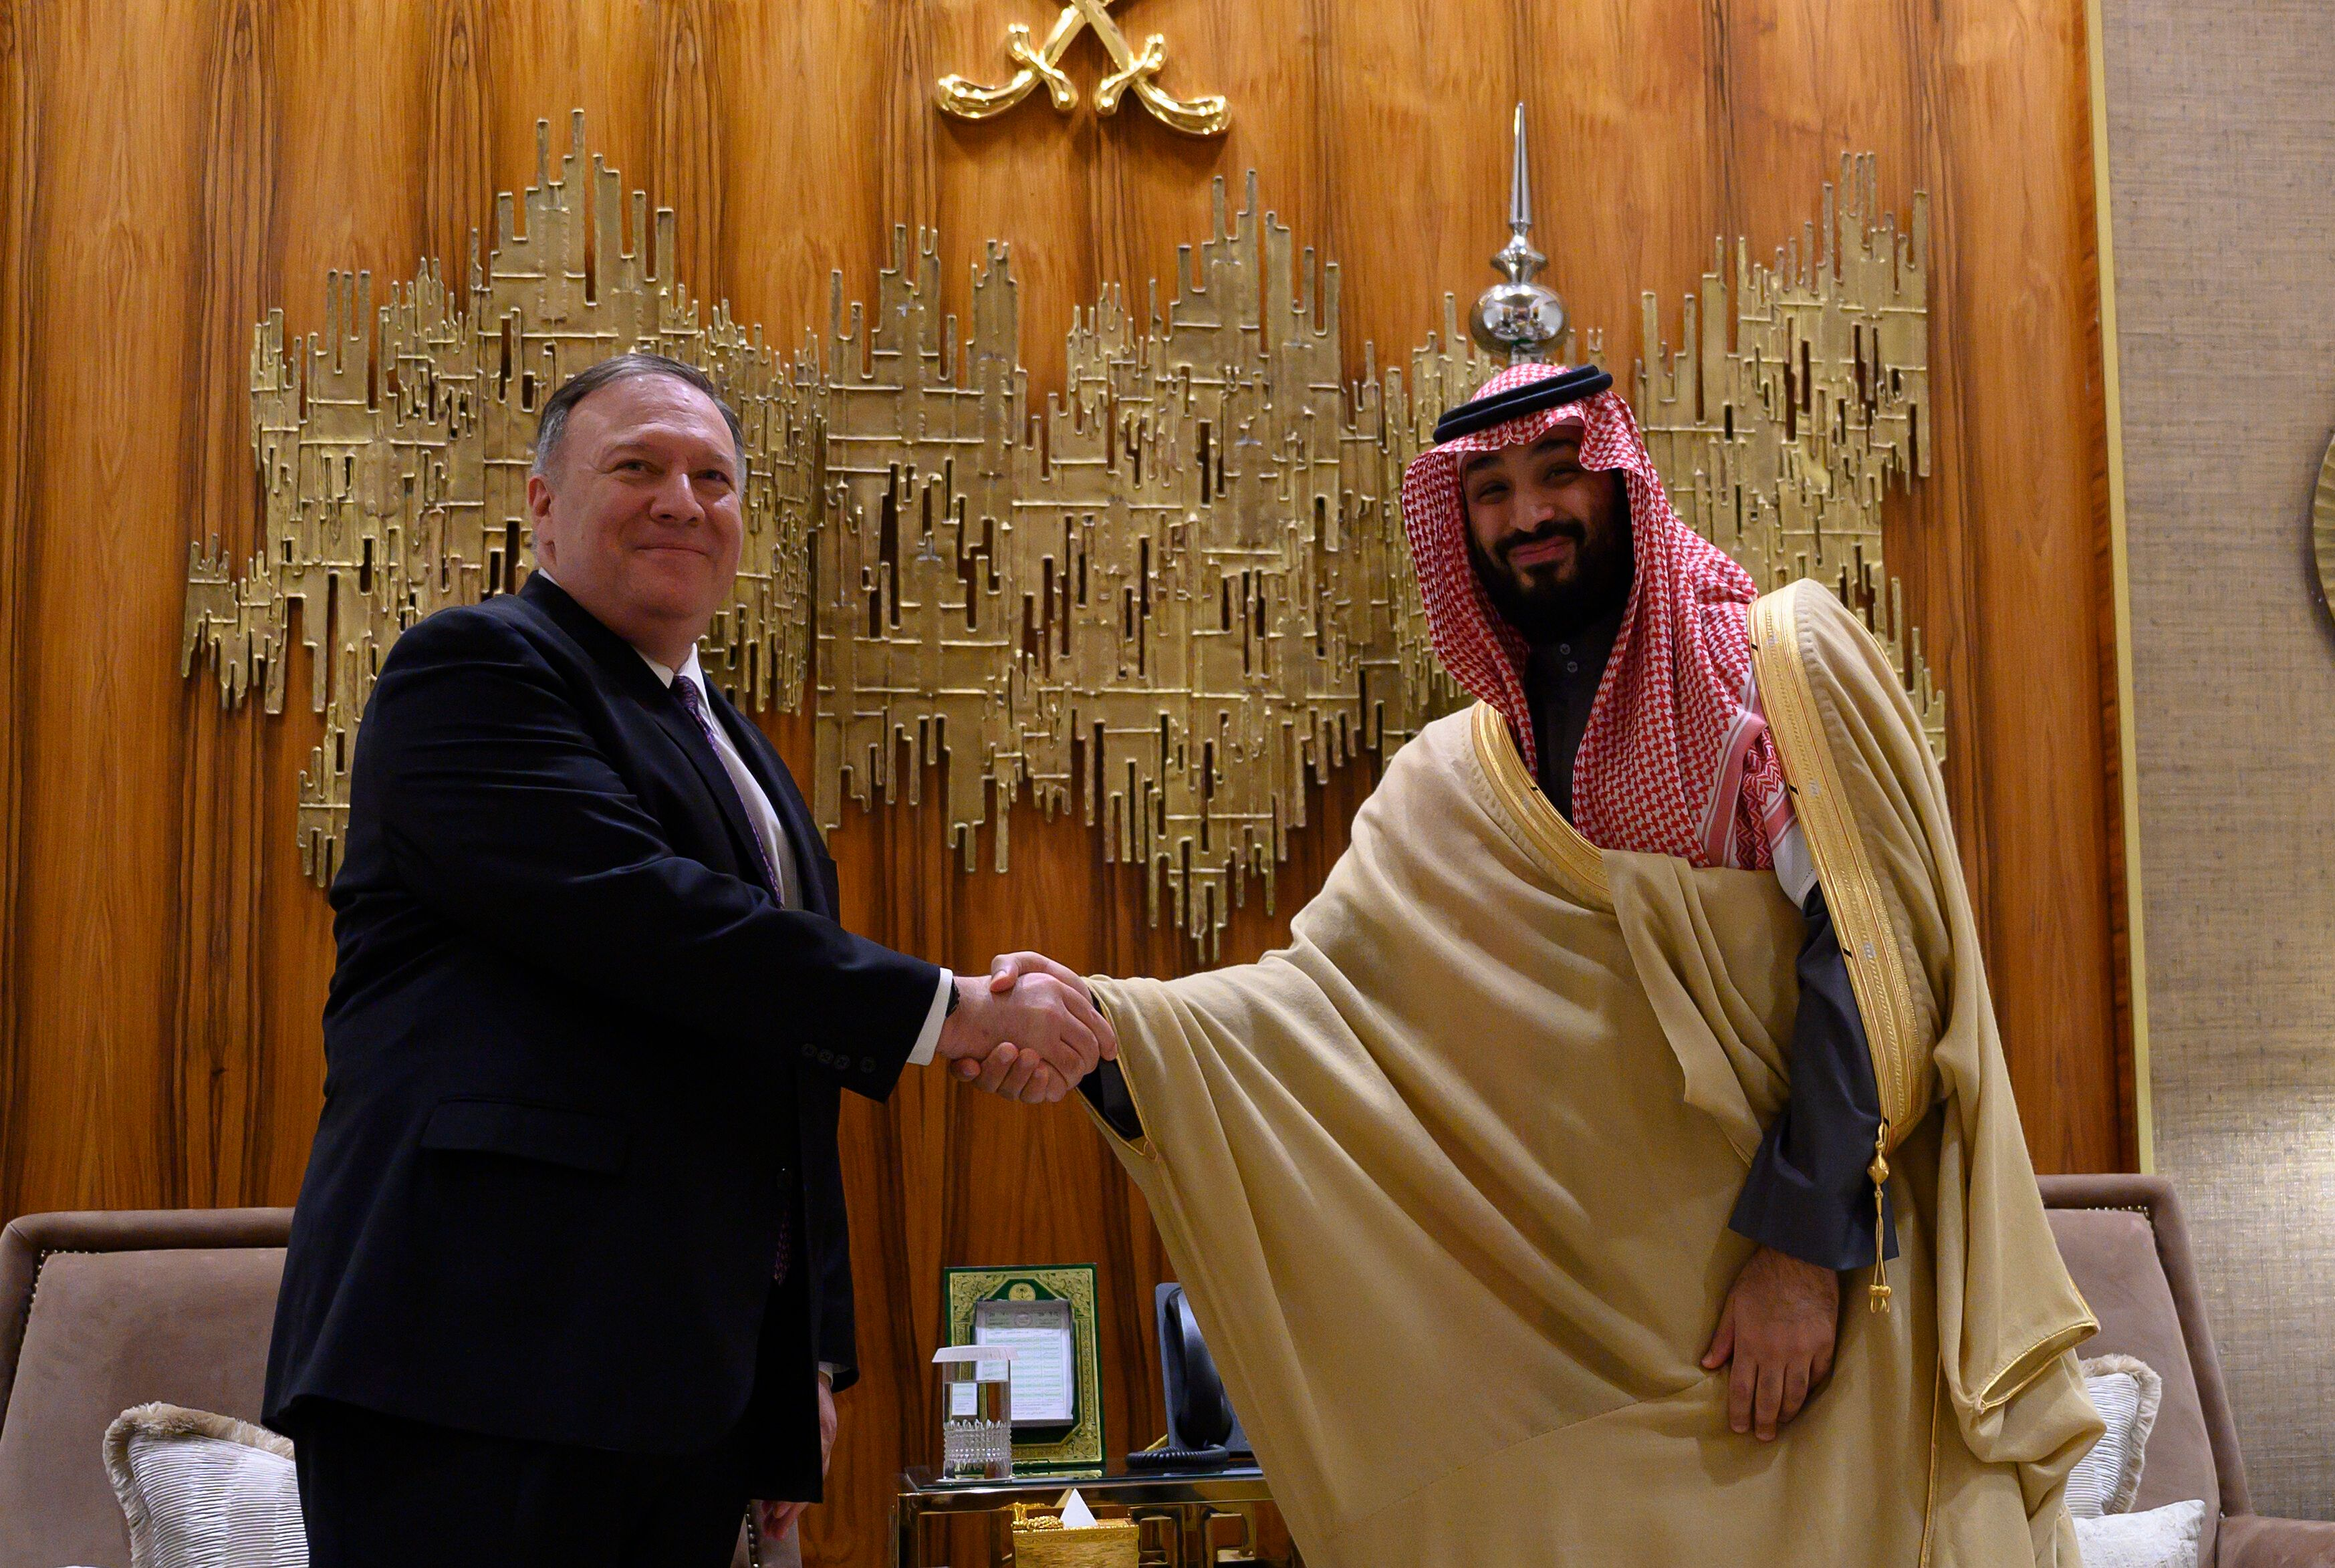 U.S. Secretary of State Mike Pompeo, left, shakes hands with Saudi Arabia's Crown Prince Mohammed bin Salman at Irqah Palace,